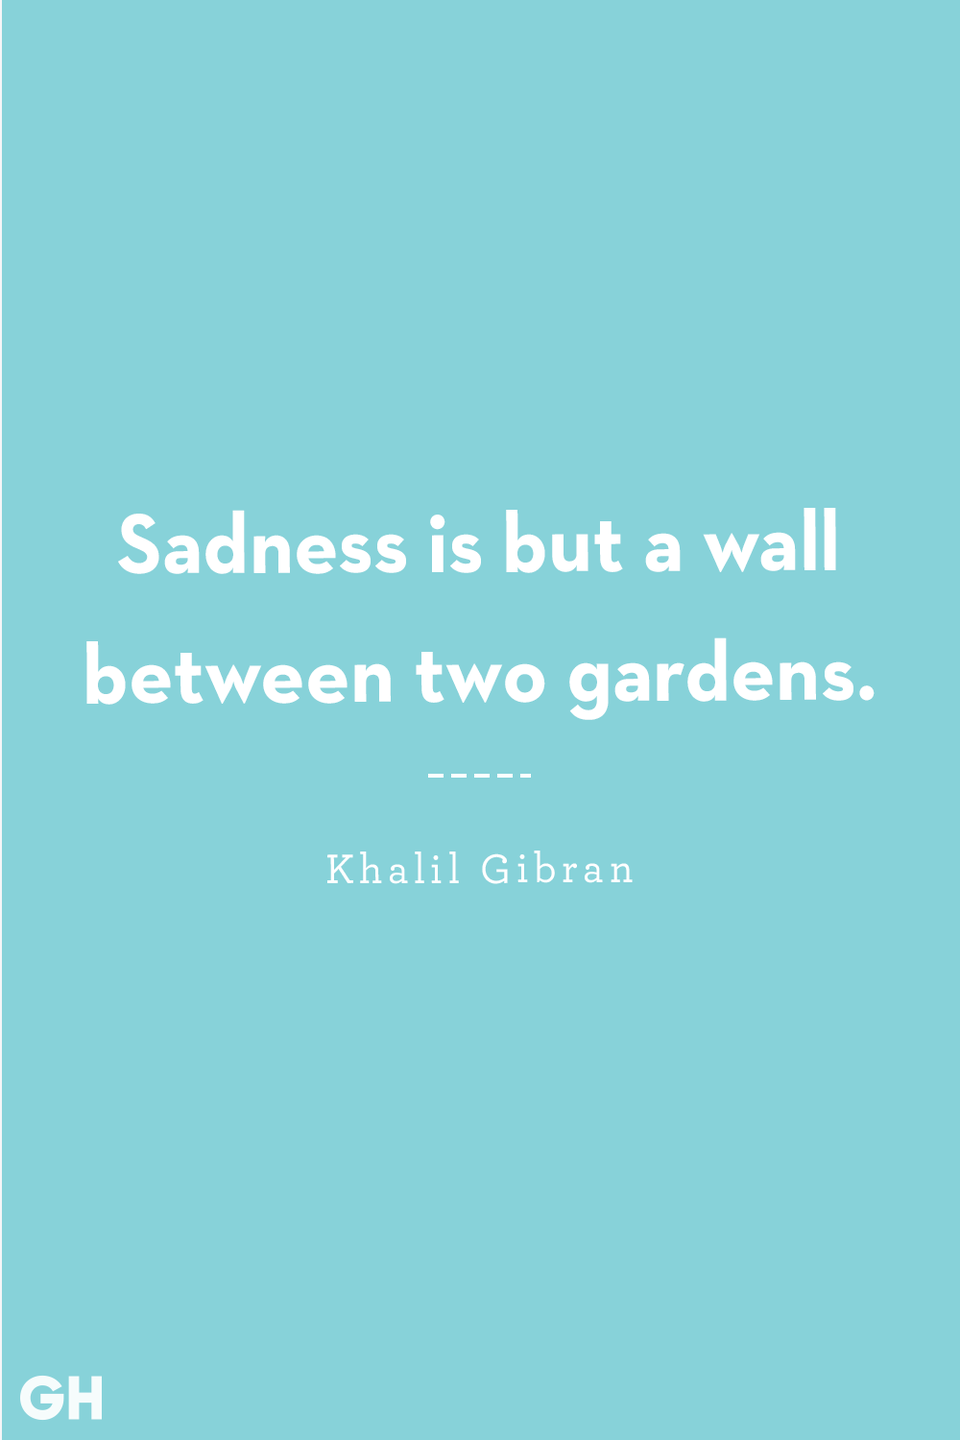 <p>Sadness is but a wall between two gardens.</p>